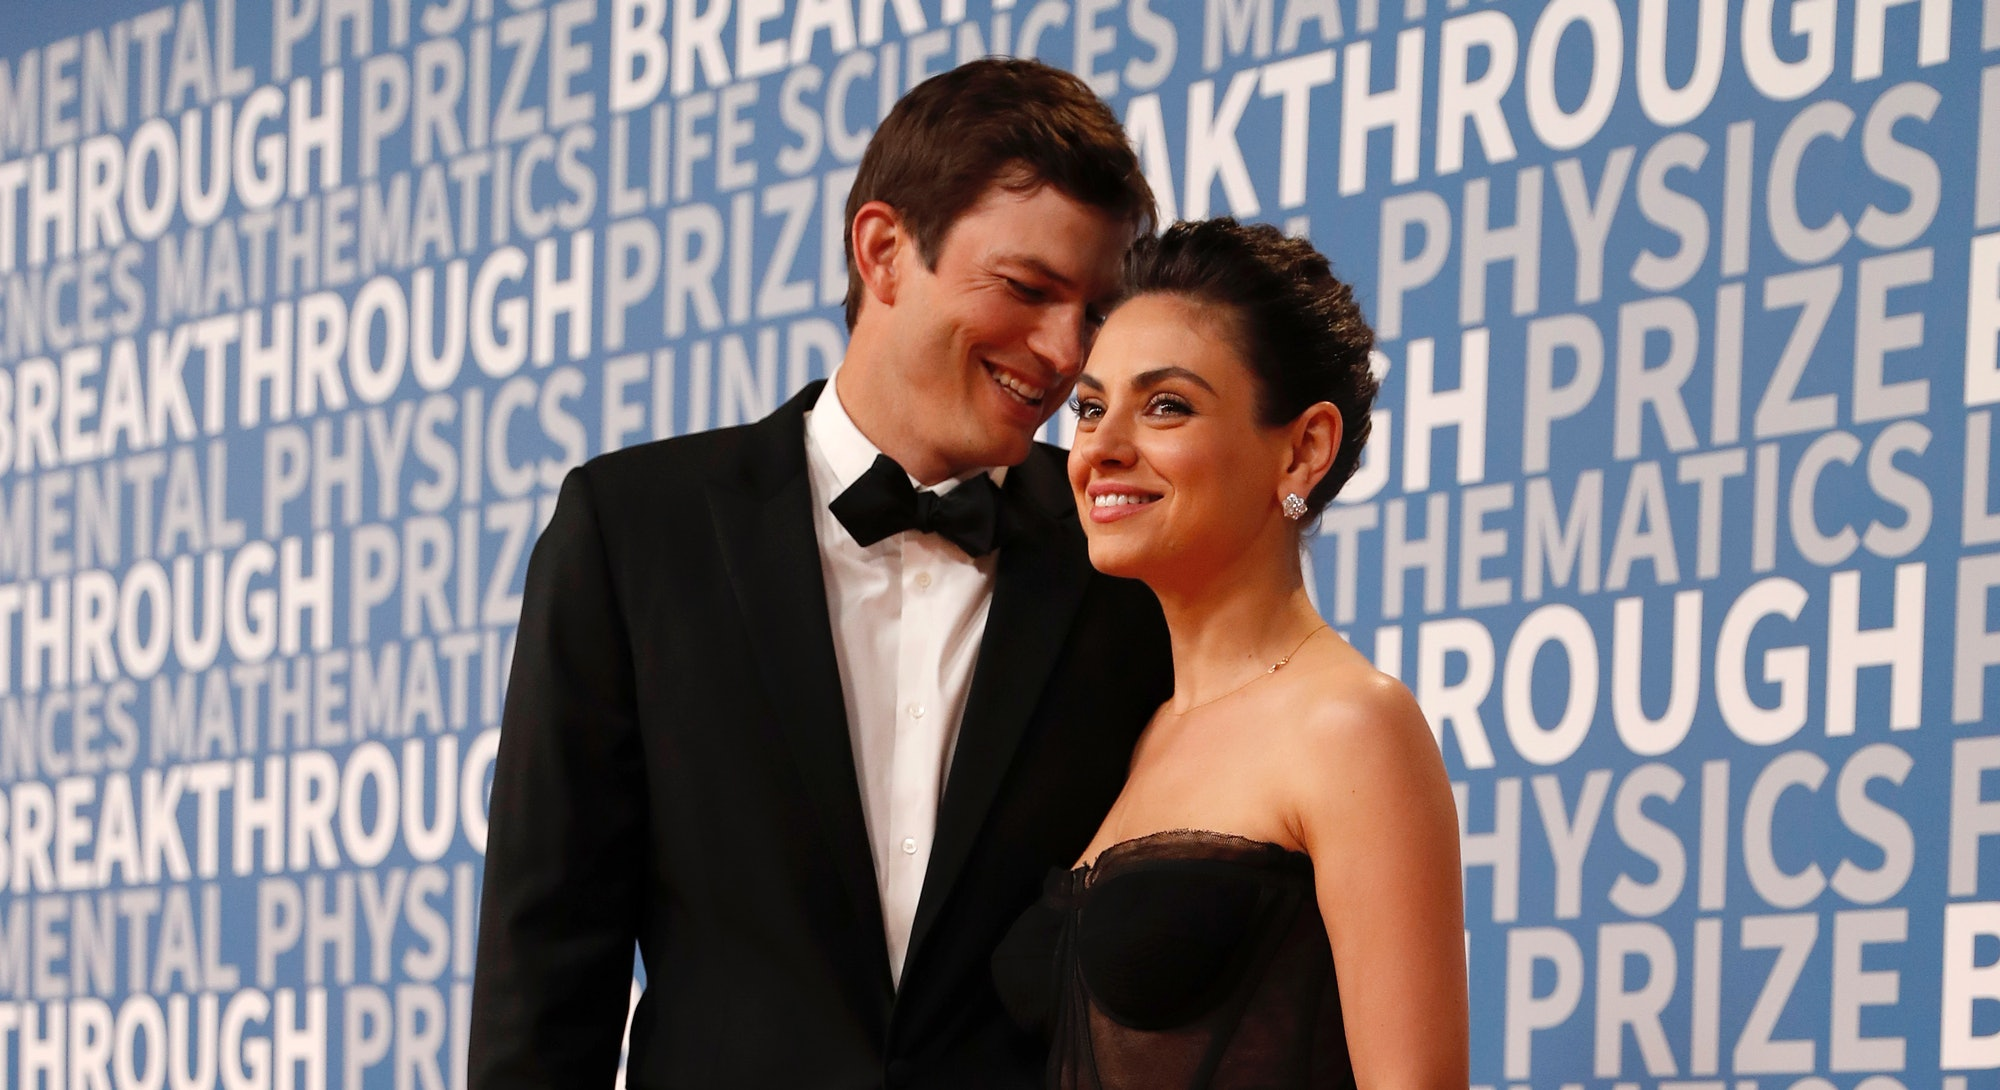 Actress Mila Kunis poses for a picture with her husband actor Ashton Kutcher on the red carpet for t...